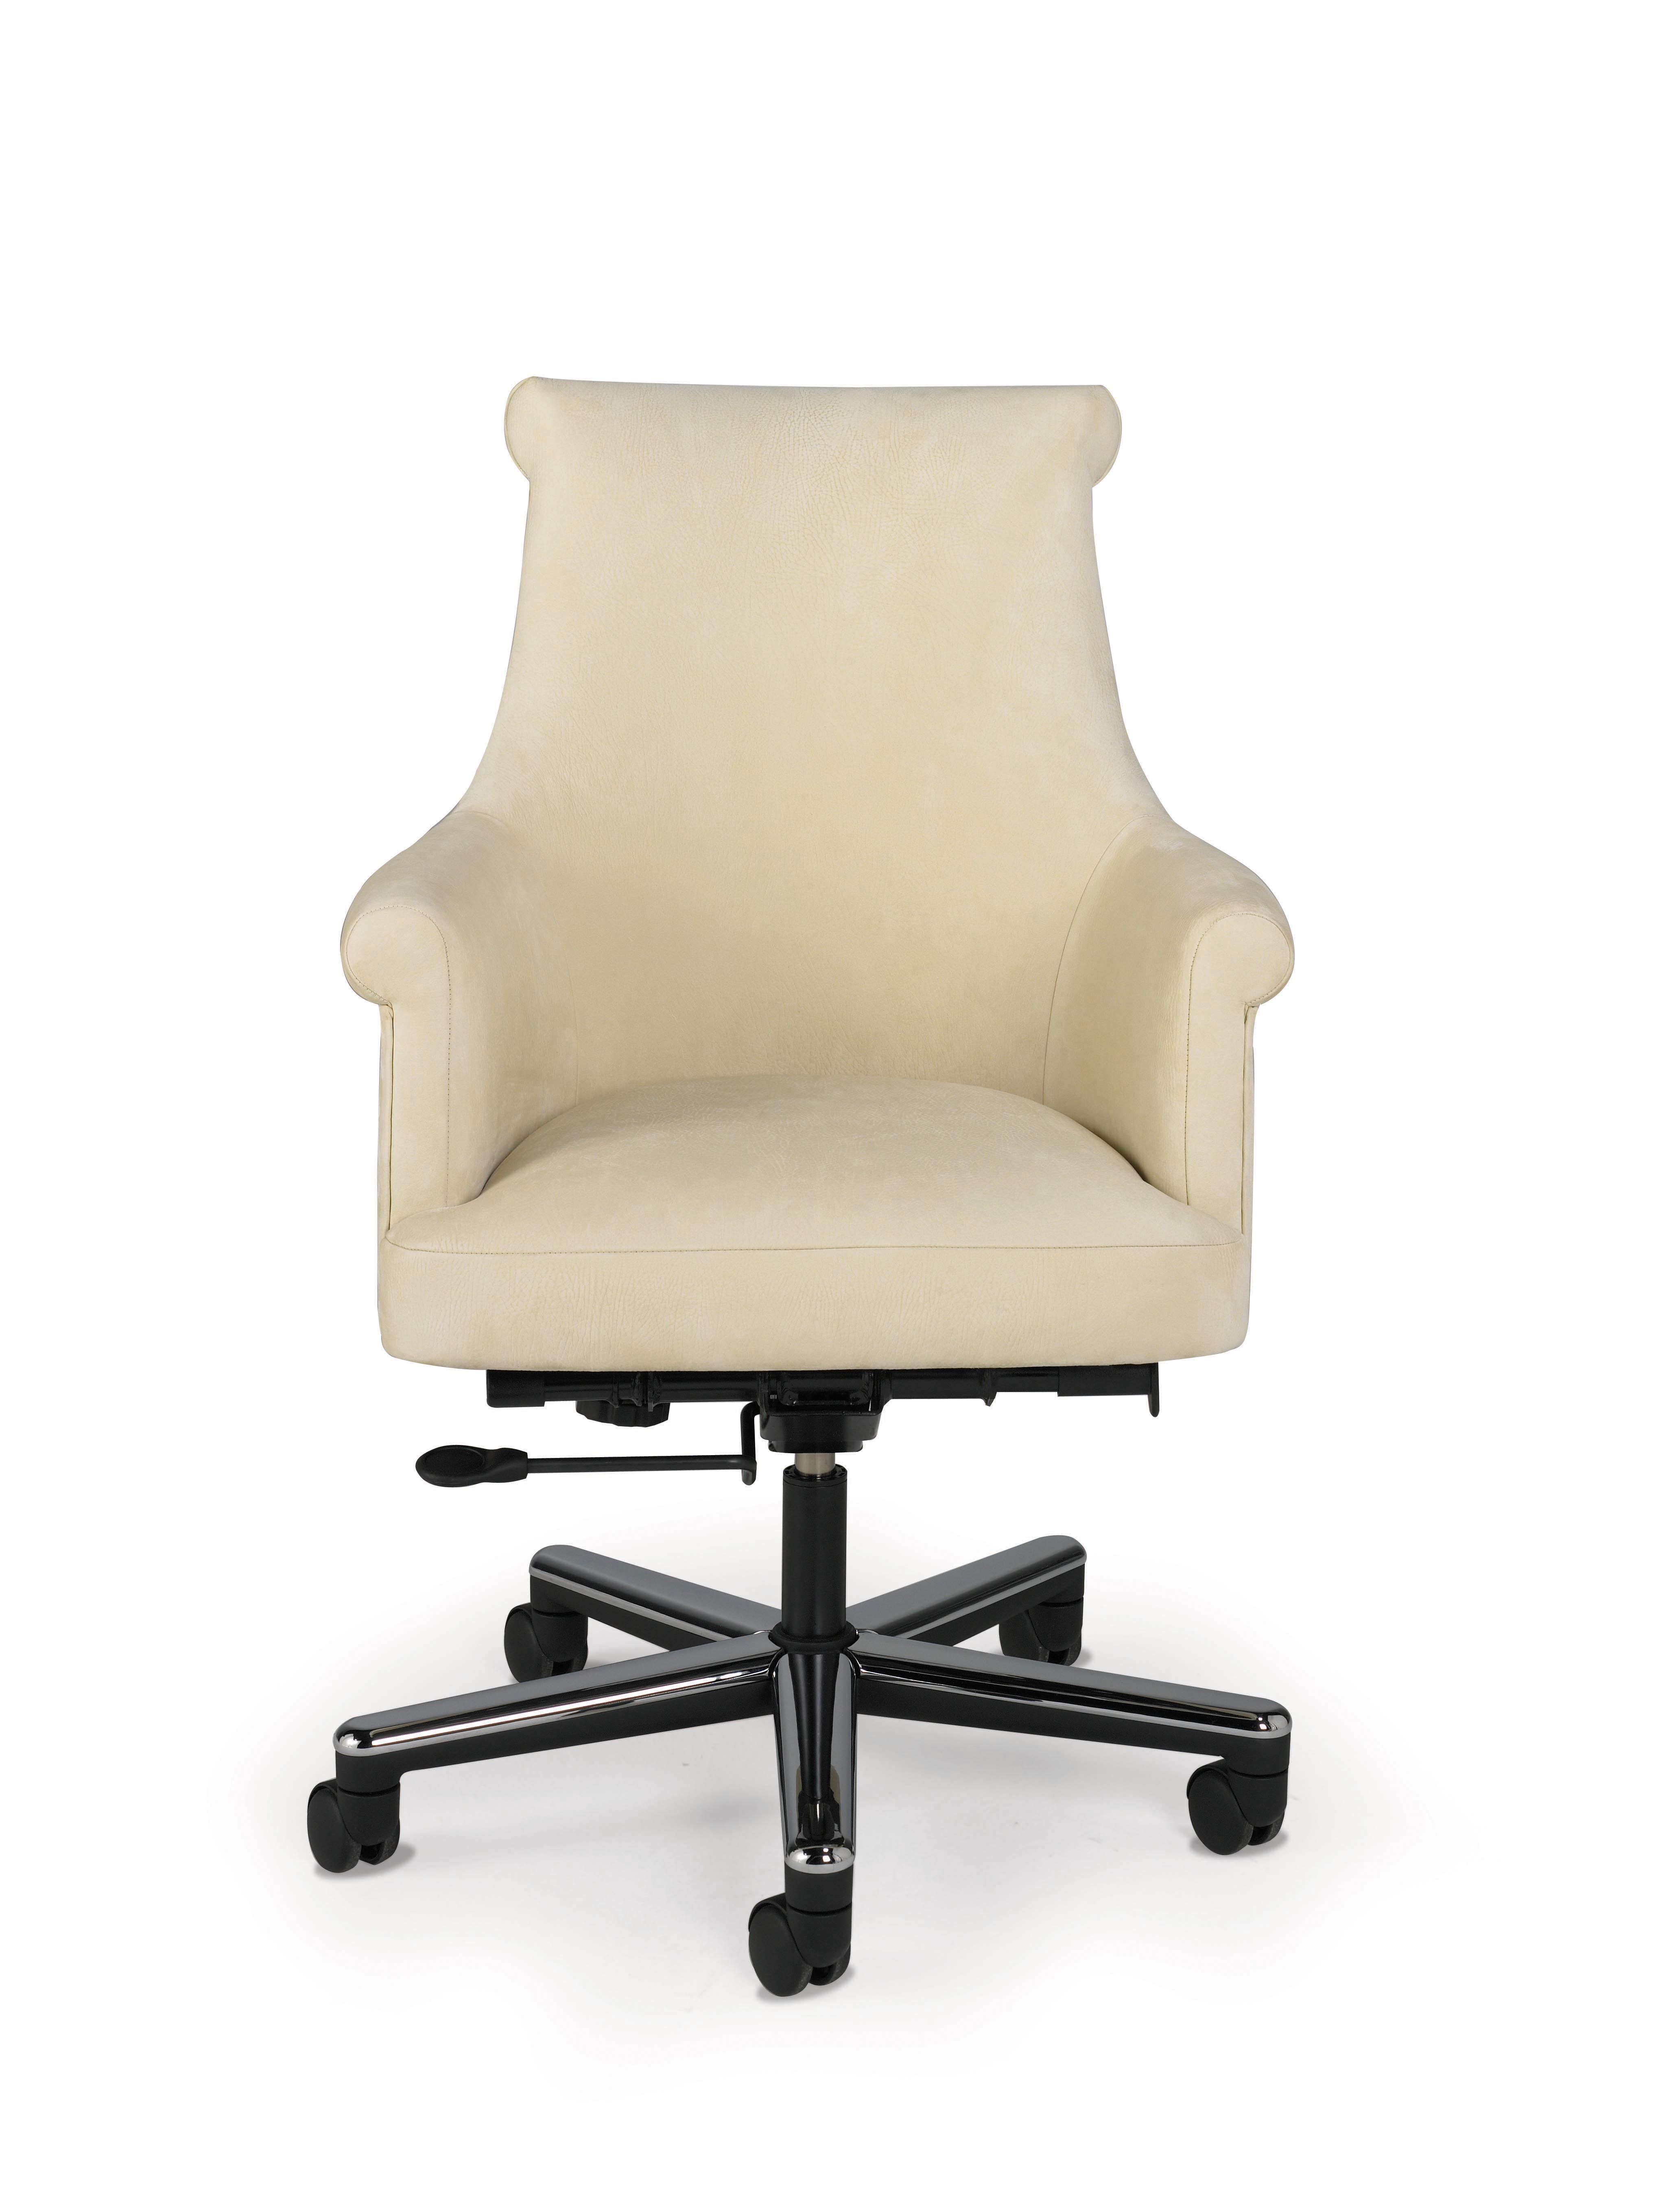 Buy Desk Chair Buy Executive Chair For David Edward By Robert Am Stern